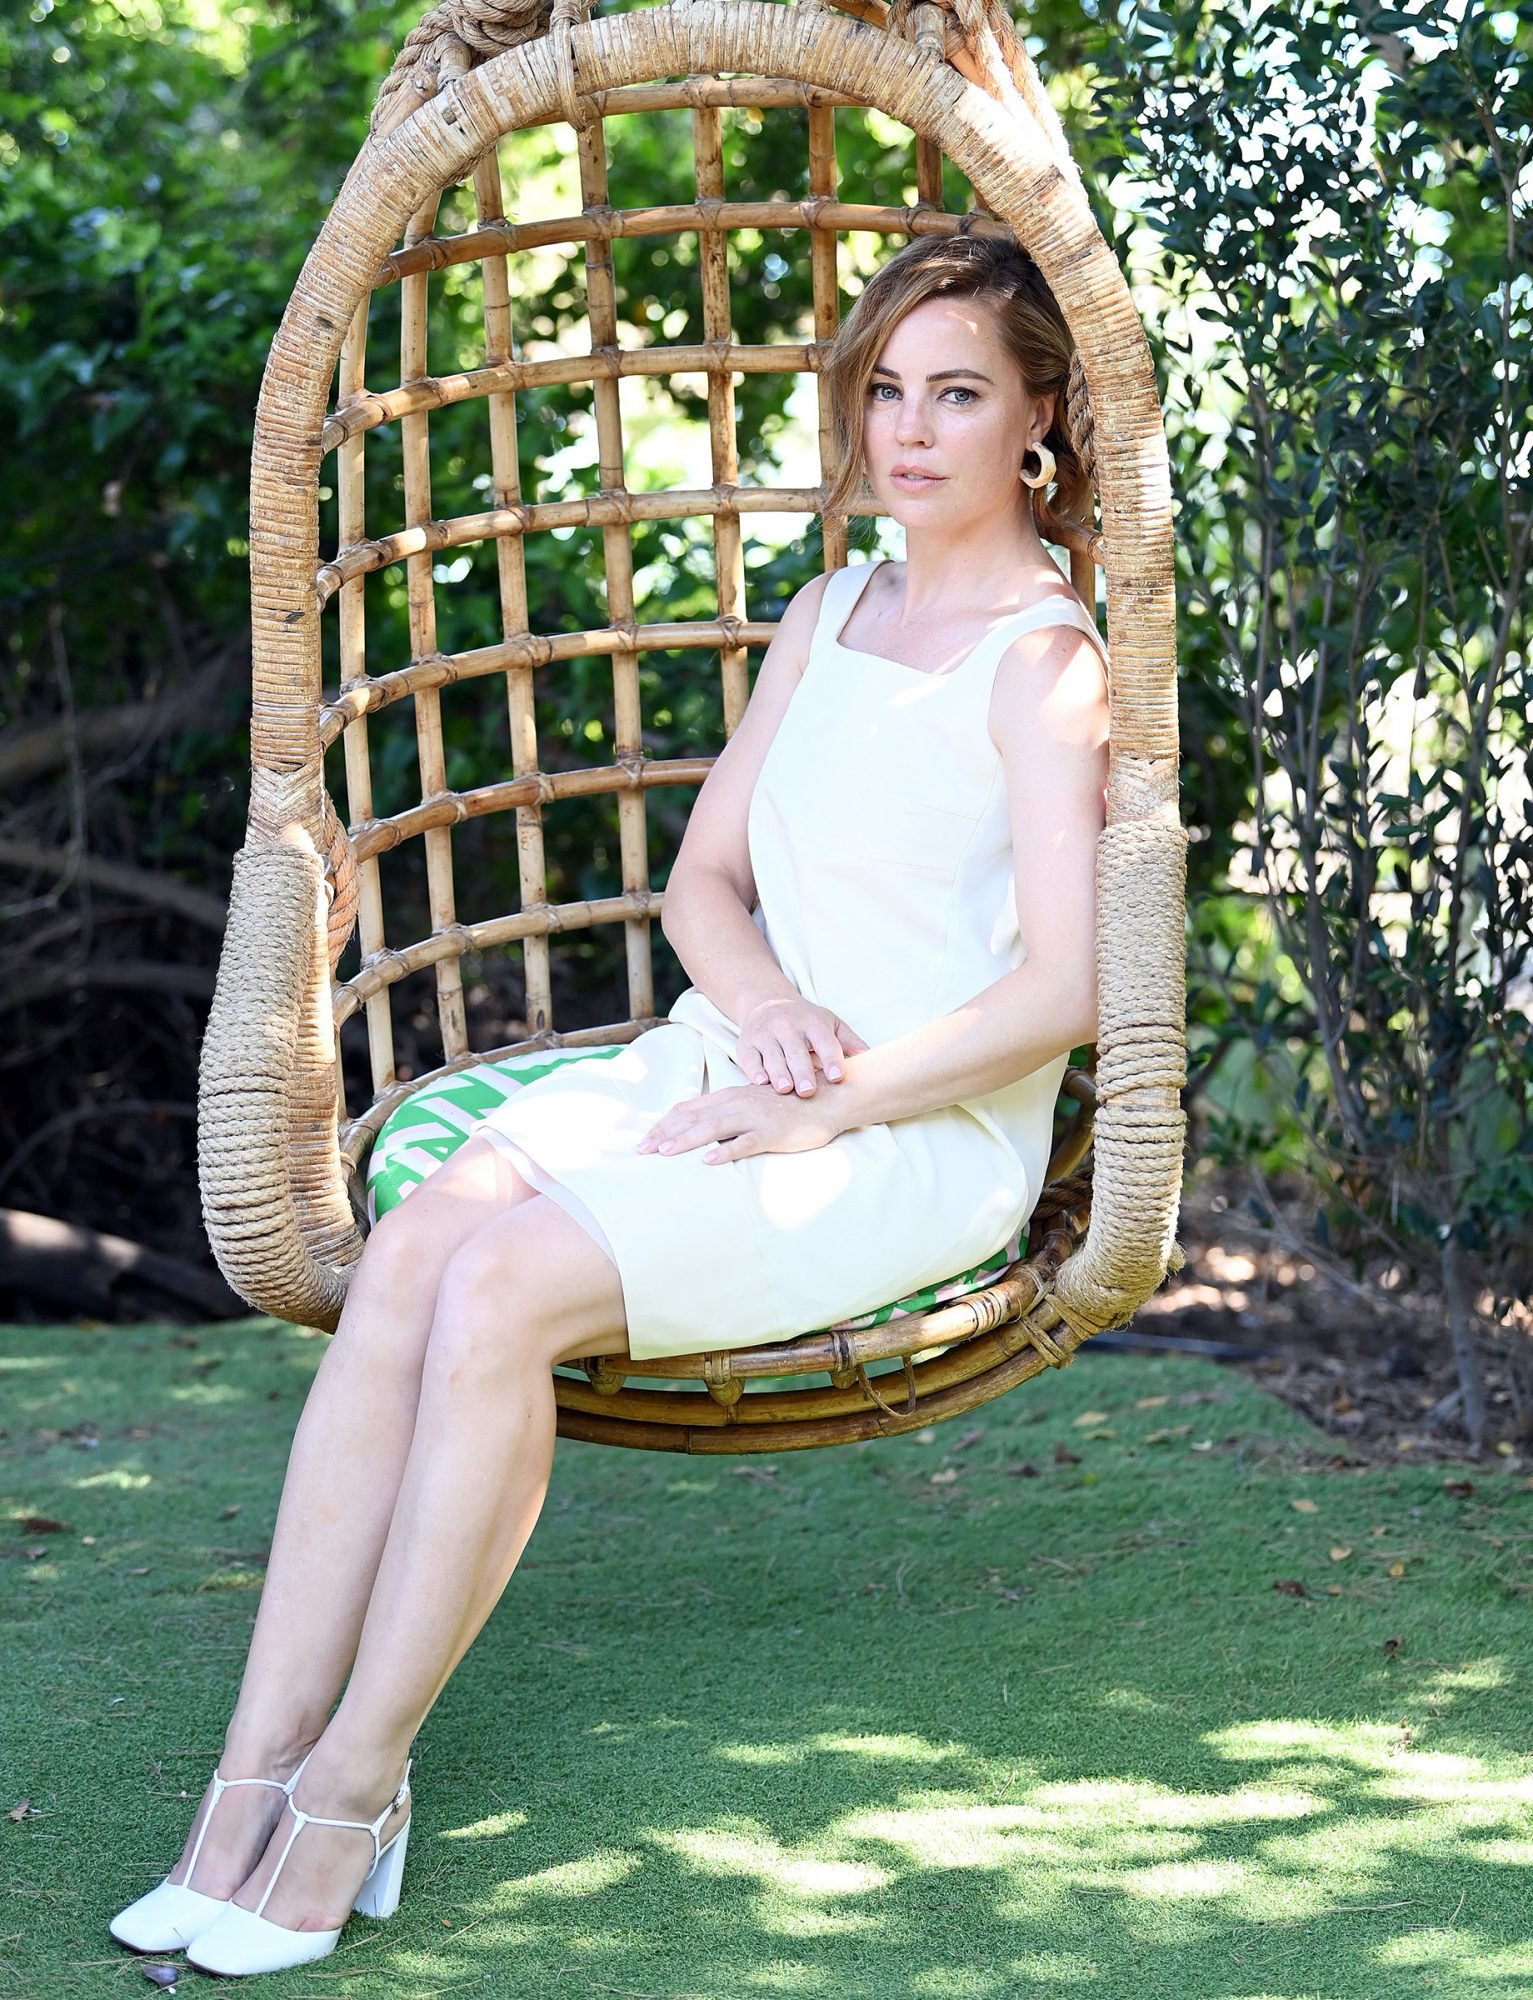 Melissa George attends Filming Italy Sardegna Festival 2020 Day 5 Press Conference at Forte Village Resort on July 26, 2020 in Santa Margherita di Pula, Italy